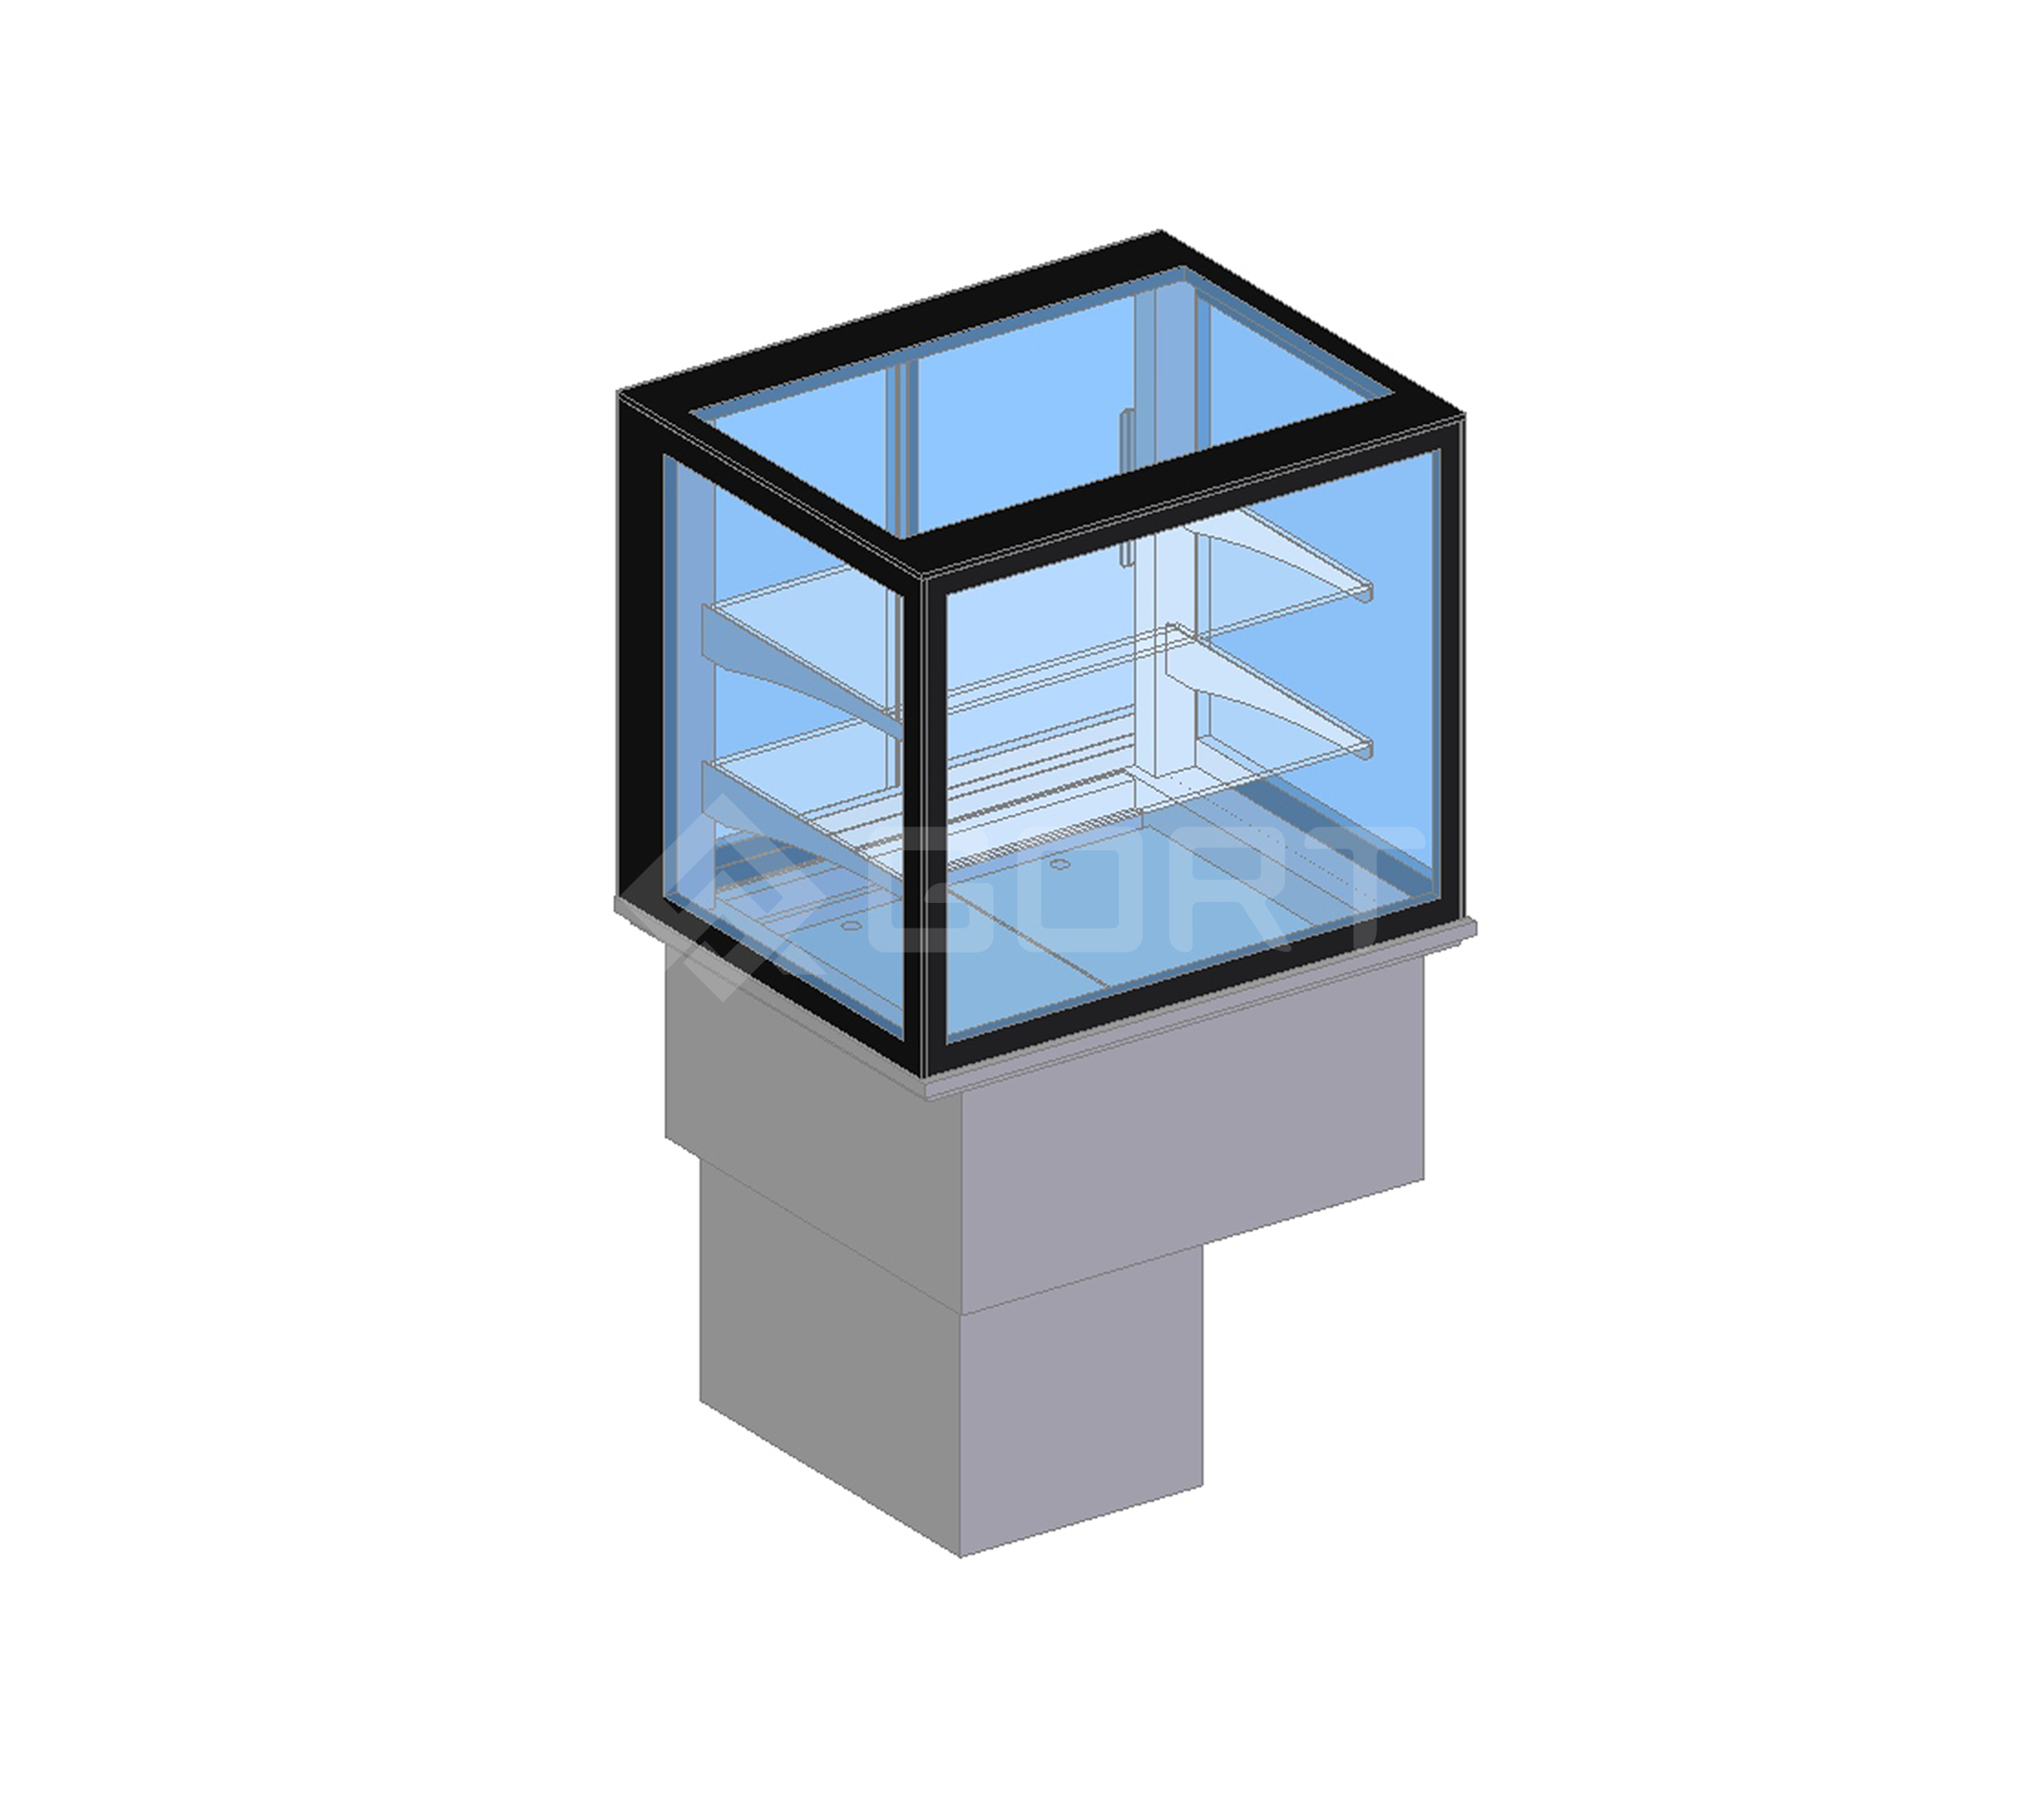 Island refrigerated display DROP-IN, 2 x GN1/1, closed